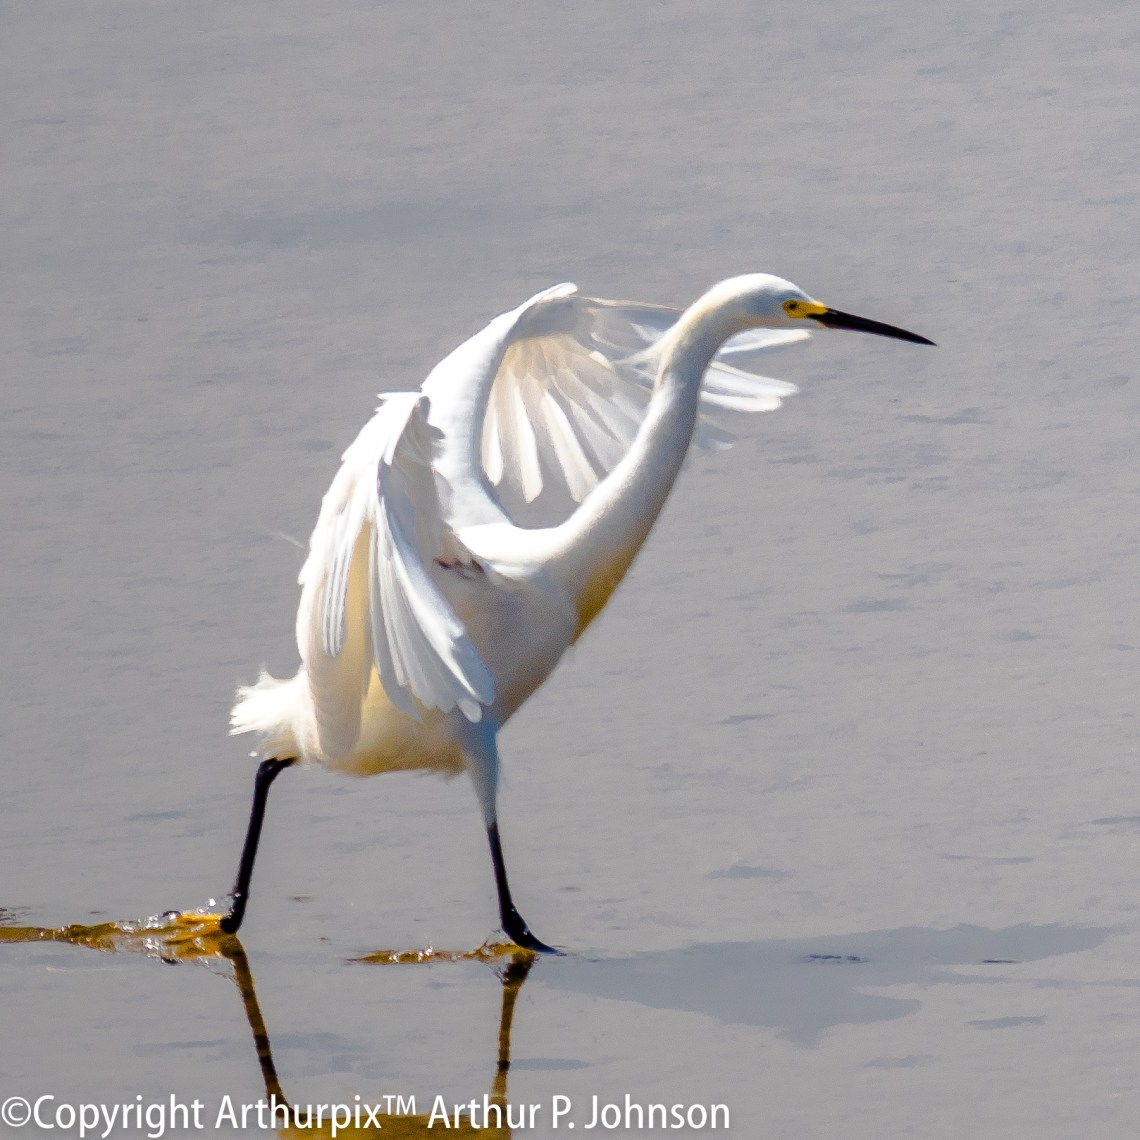 Mature Snowy Egret dragging left foot to stir up prey.